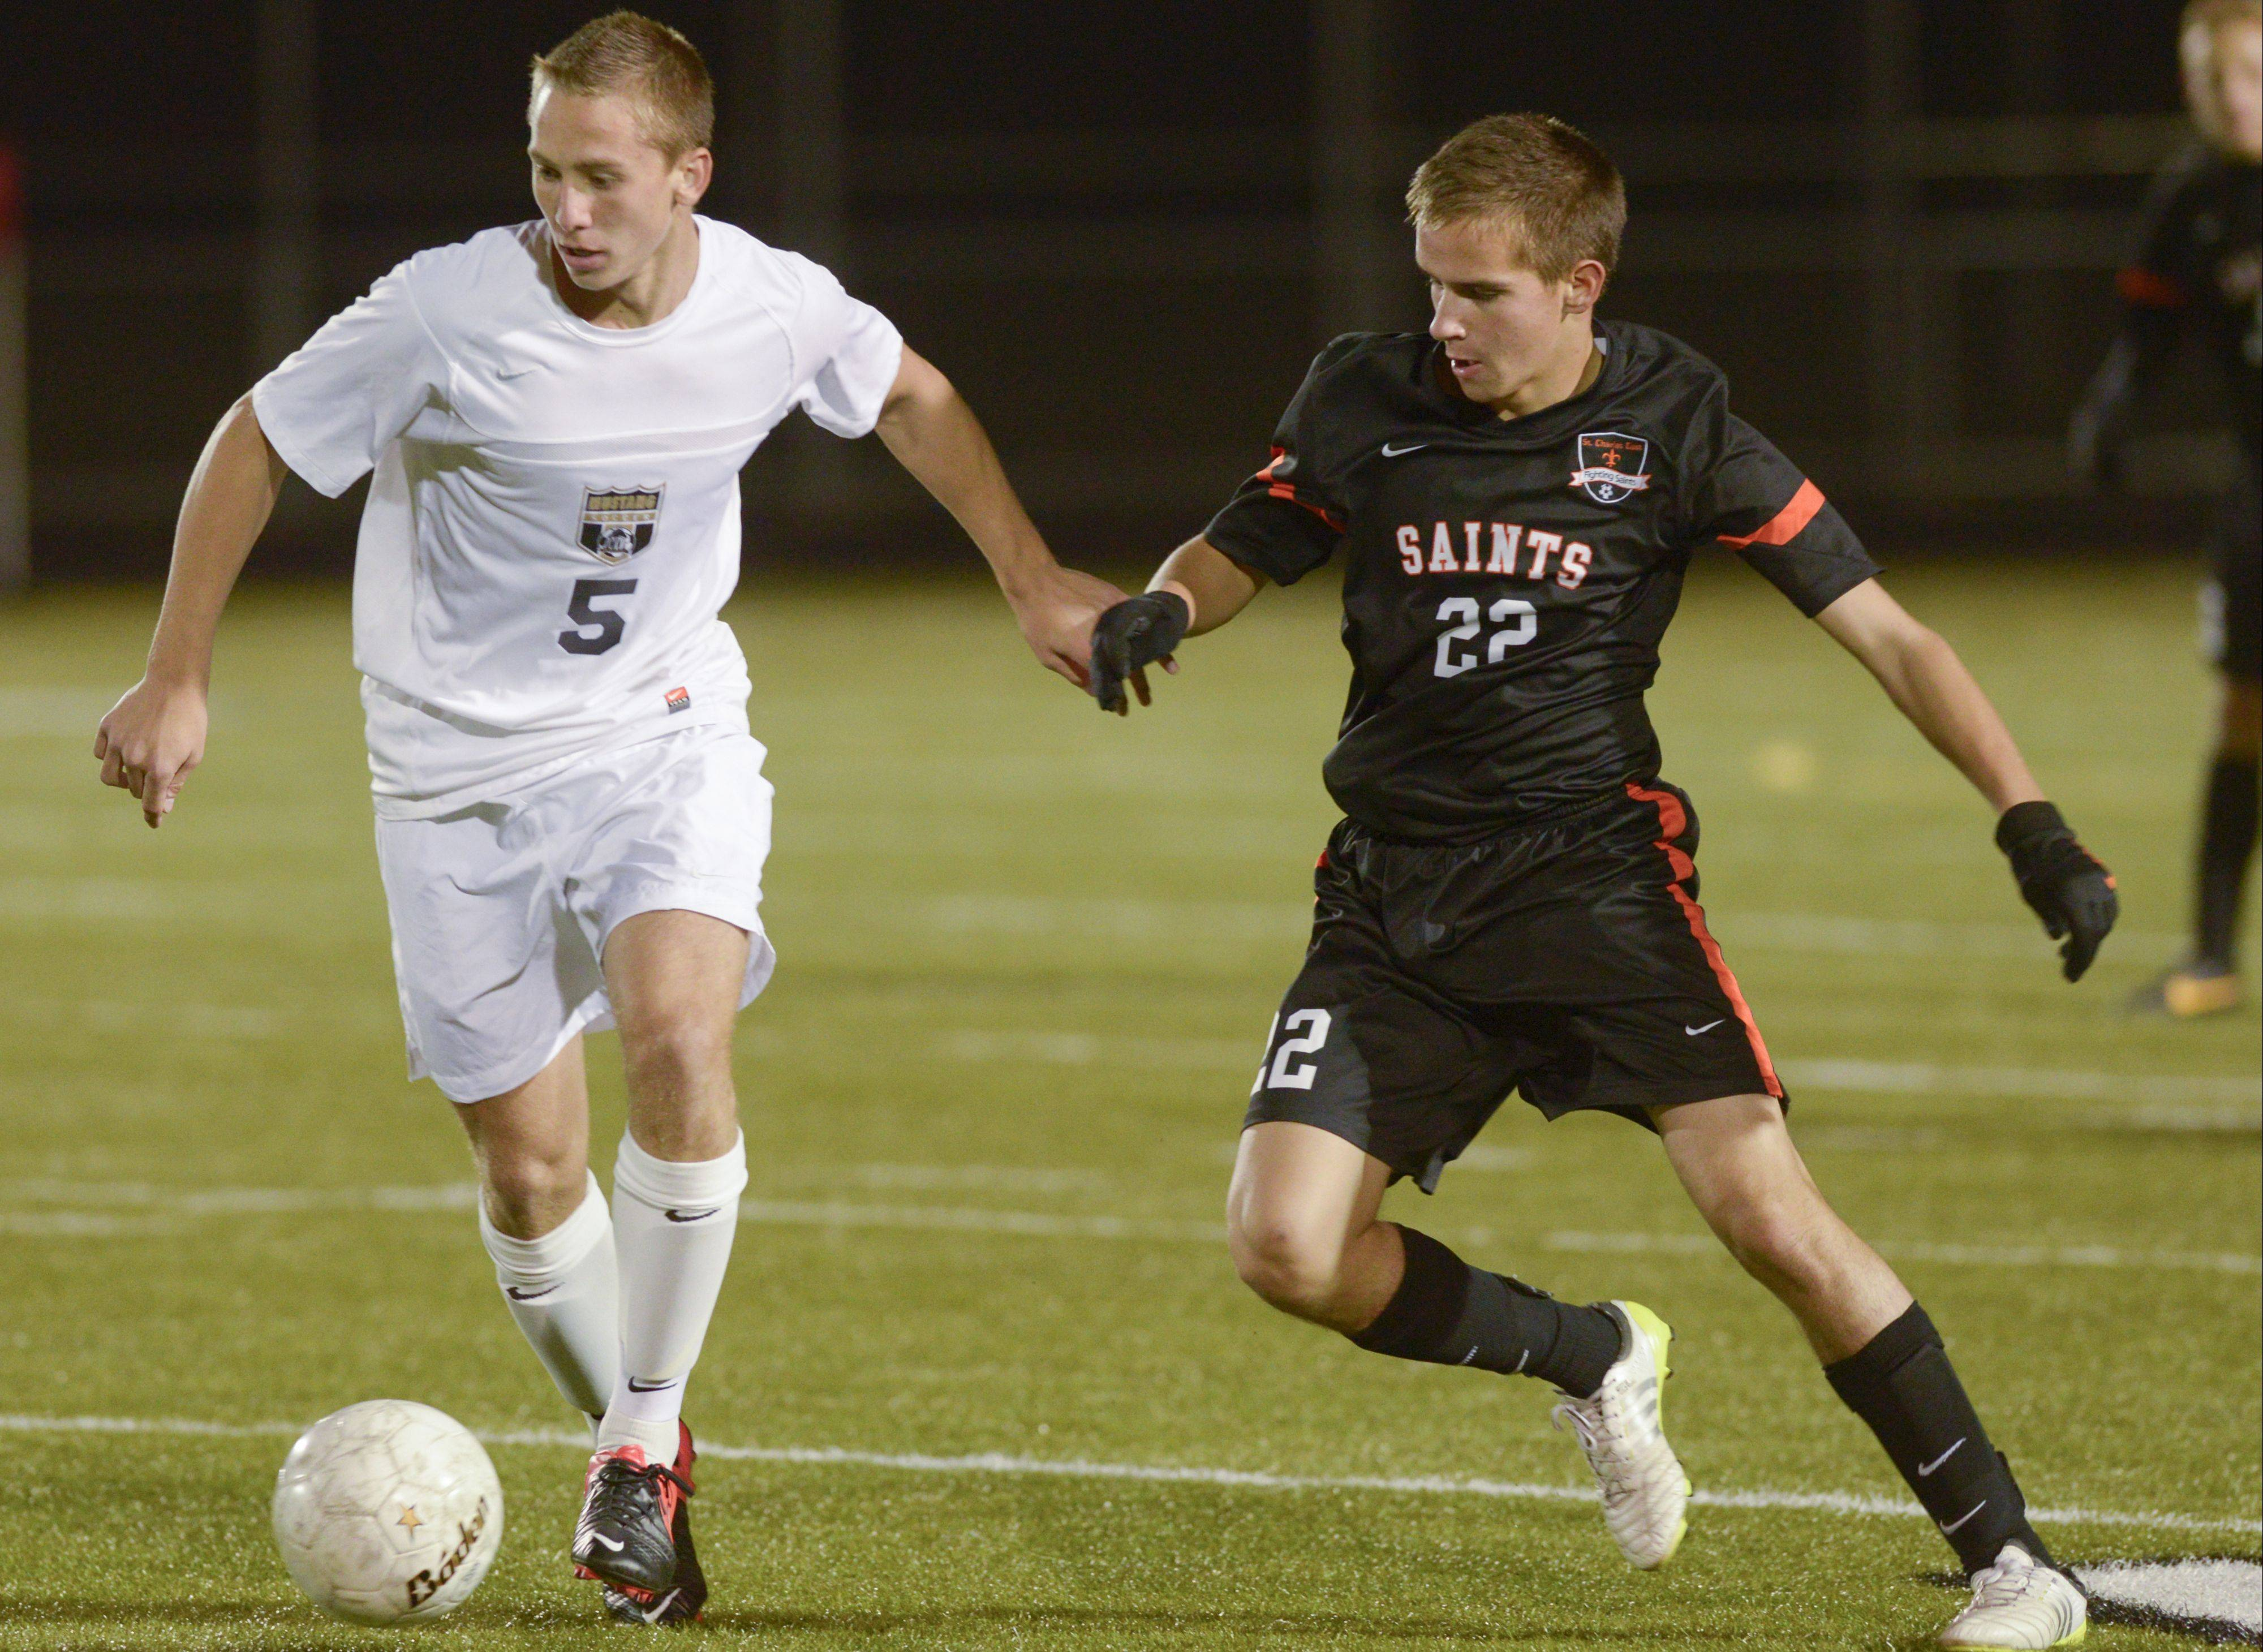 Jake Celinski of Metea Valley and Rob Wolak of St. Charles East work for control of the ball during boys soccer at home Wednesday.